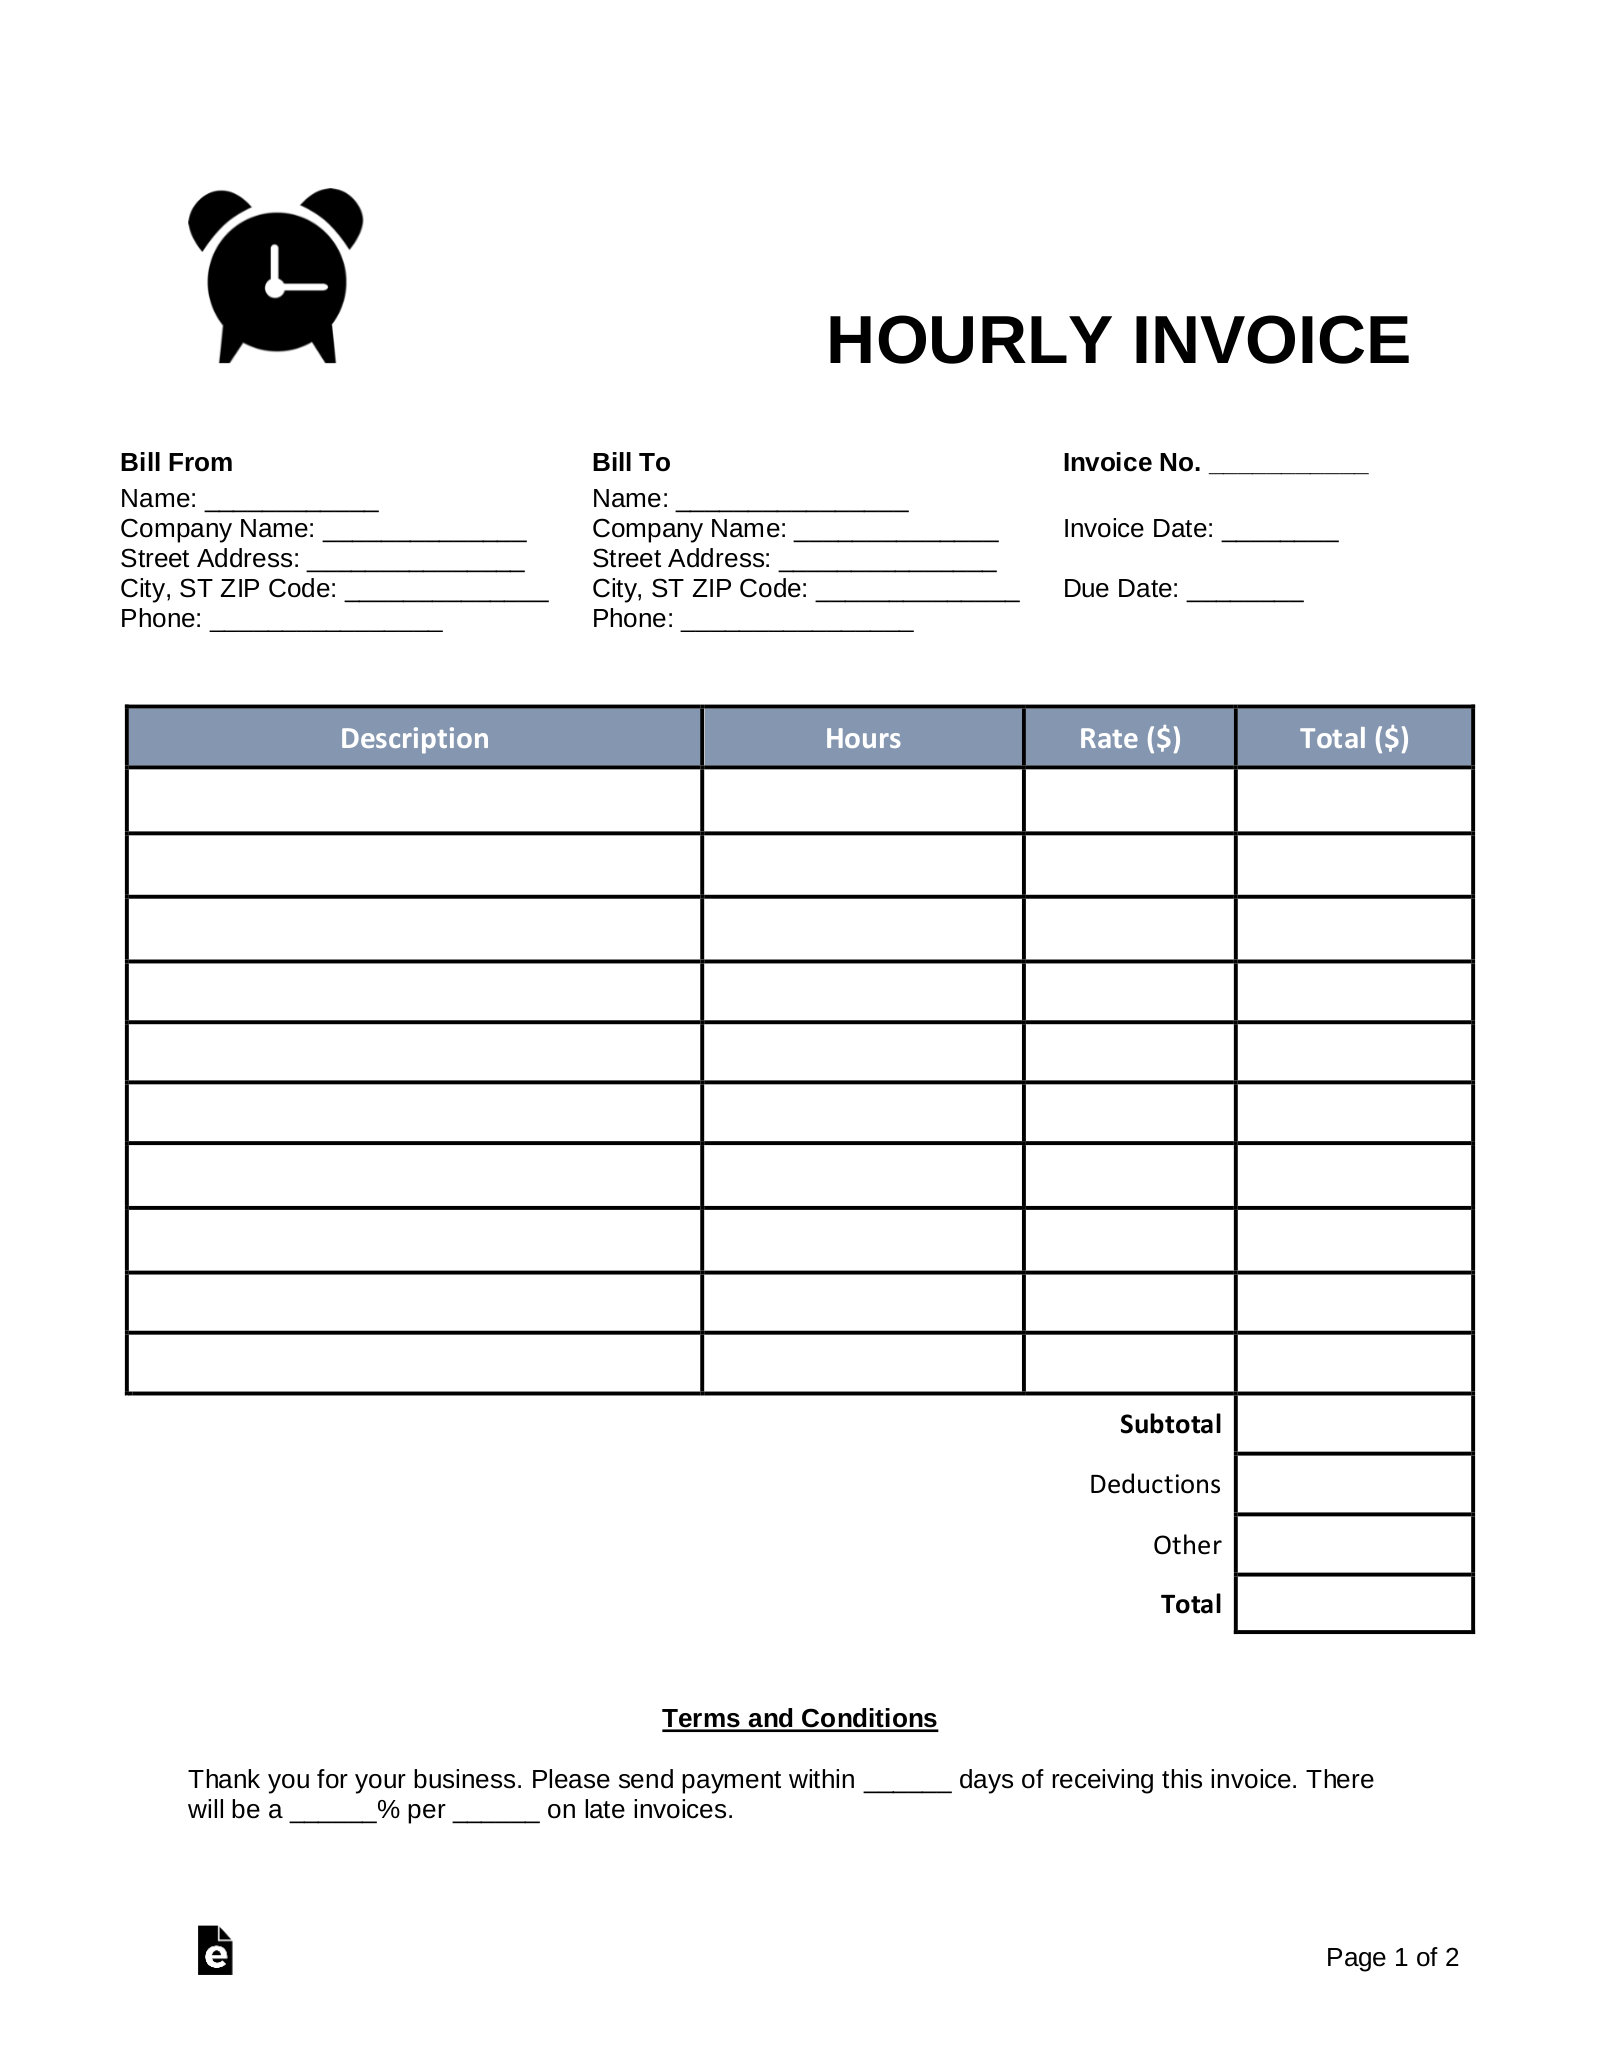 Free Hourly Invoice Template